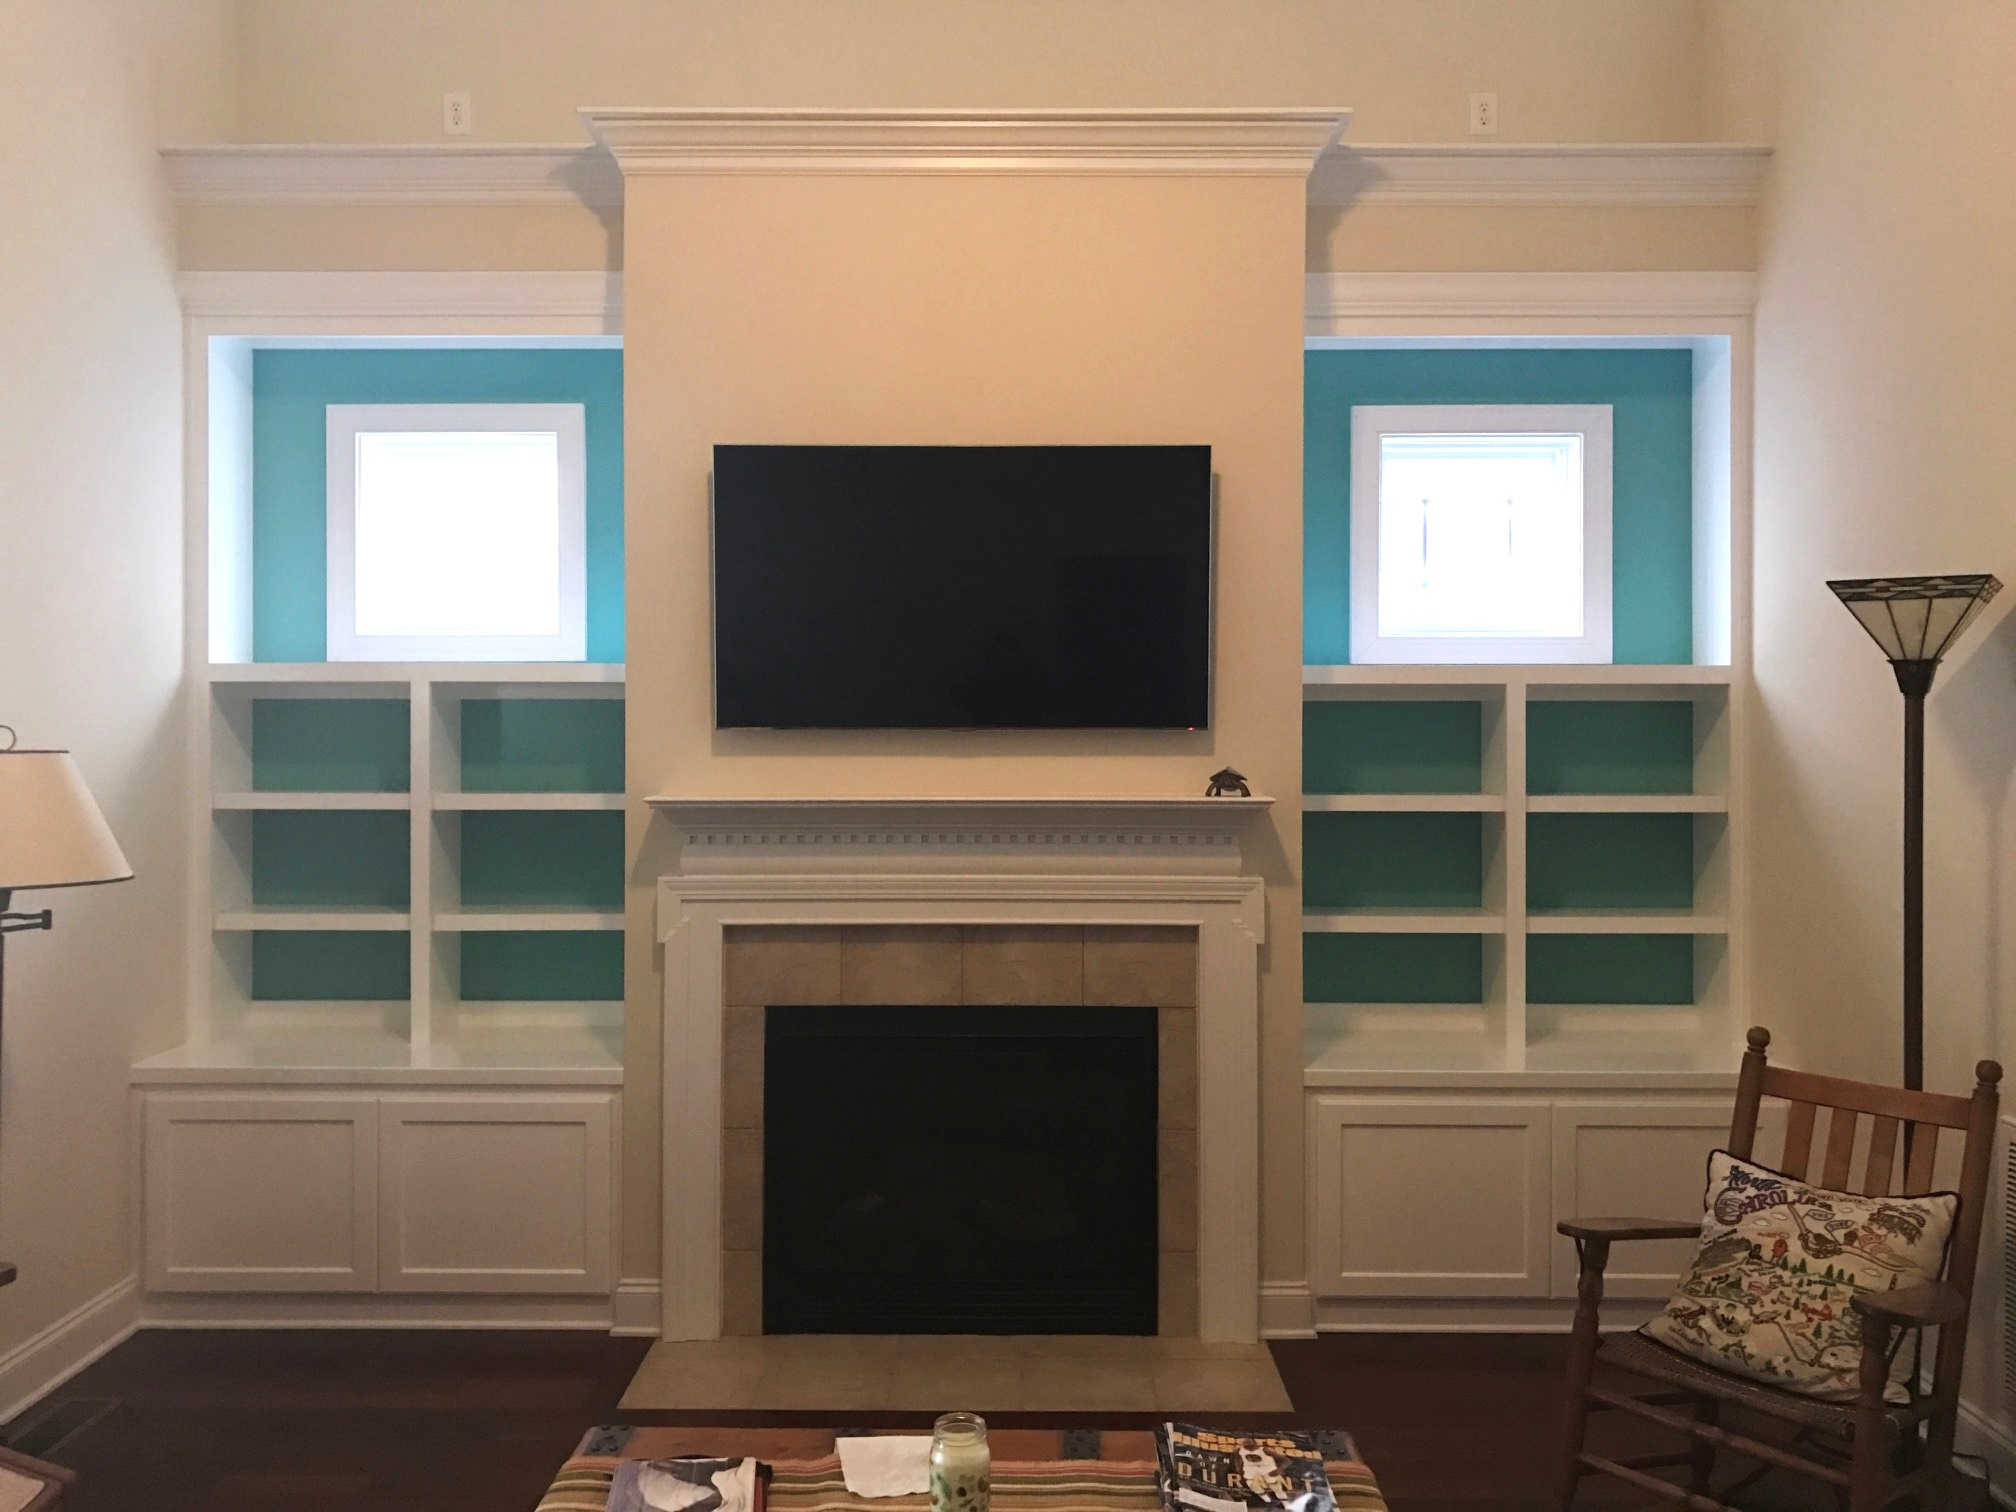 Fireplace Built-Ins with Accent Backer, Adjustable Shelves, Shaker Doors, and Crown